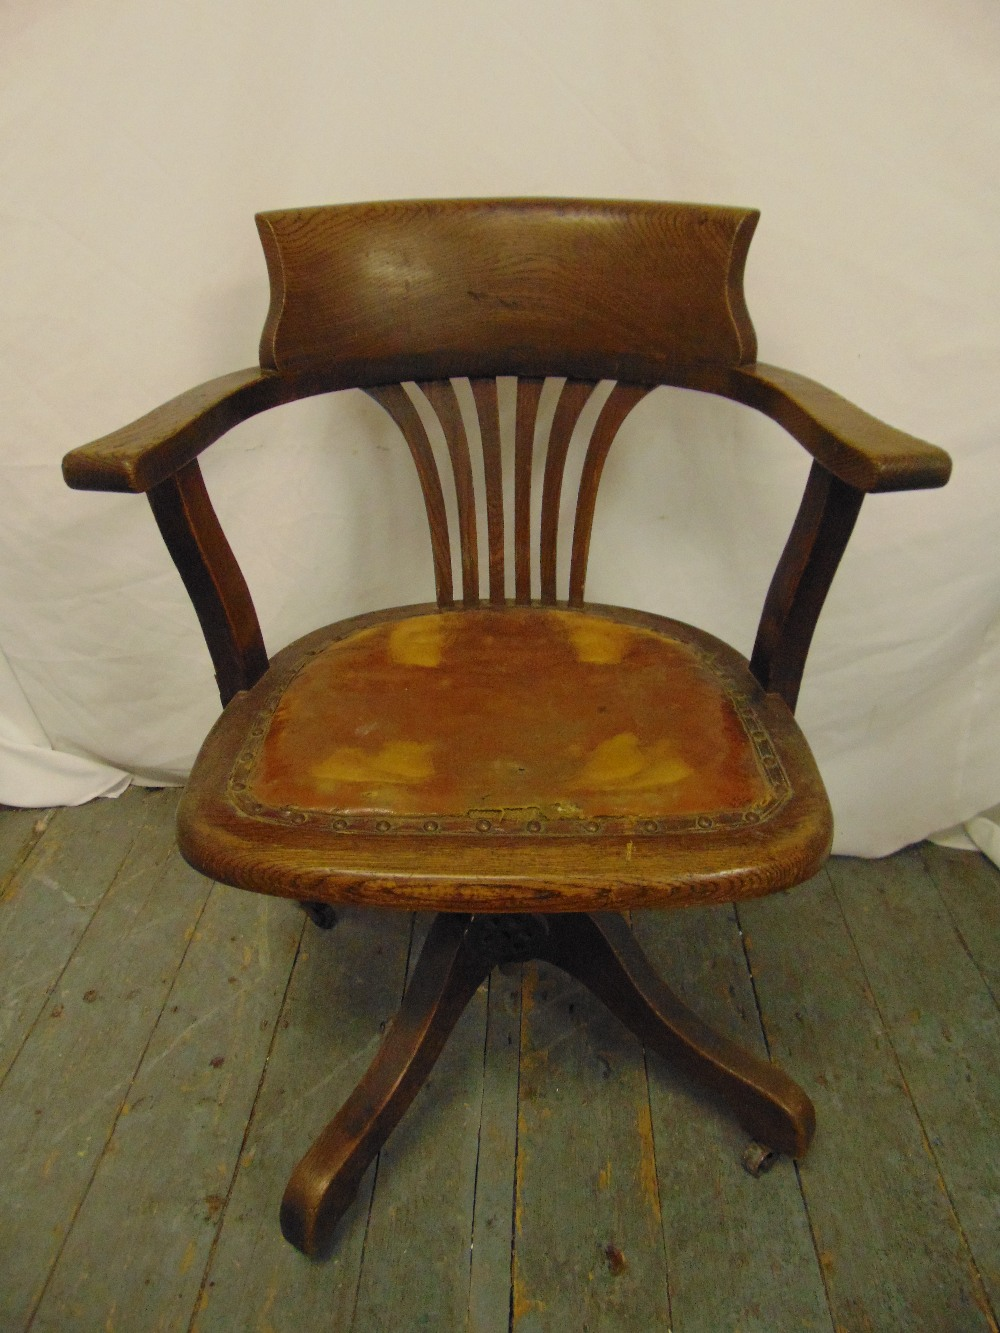 Lot 28 - An early 20th century oak captains chair with leather seat and original castors, label to base A M